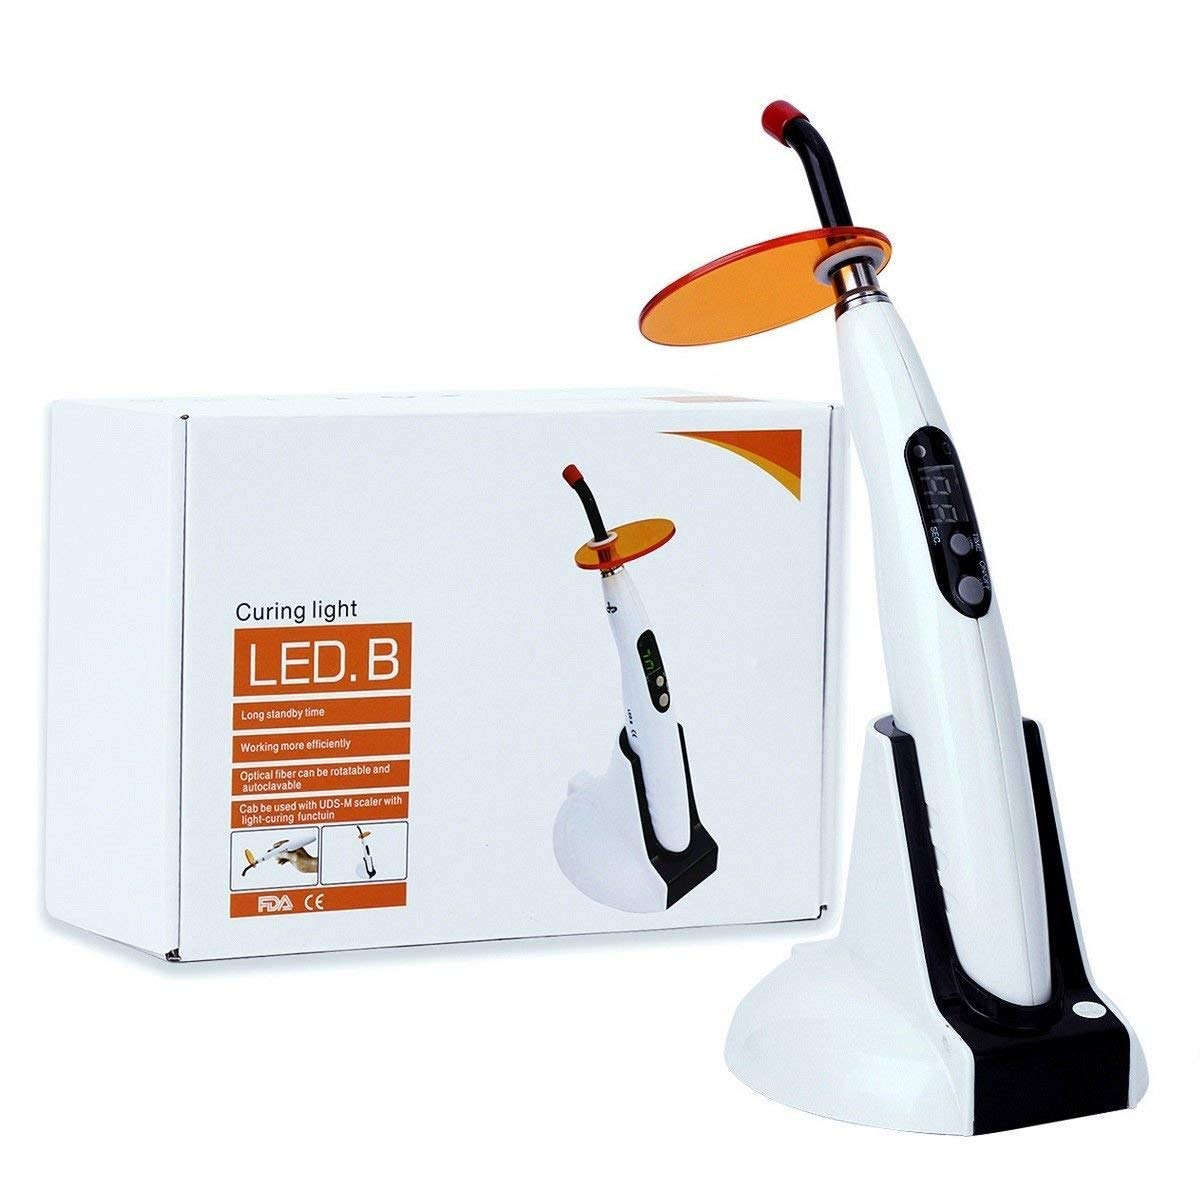 SoHome High Power 1400mw/cm2 LED Light Wireless Cordless Cure Lamp LED.B Woodpecker Style